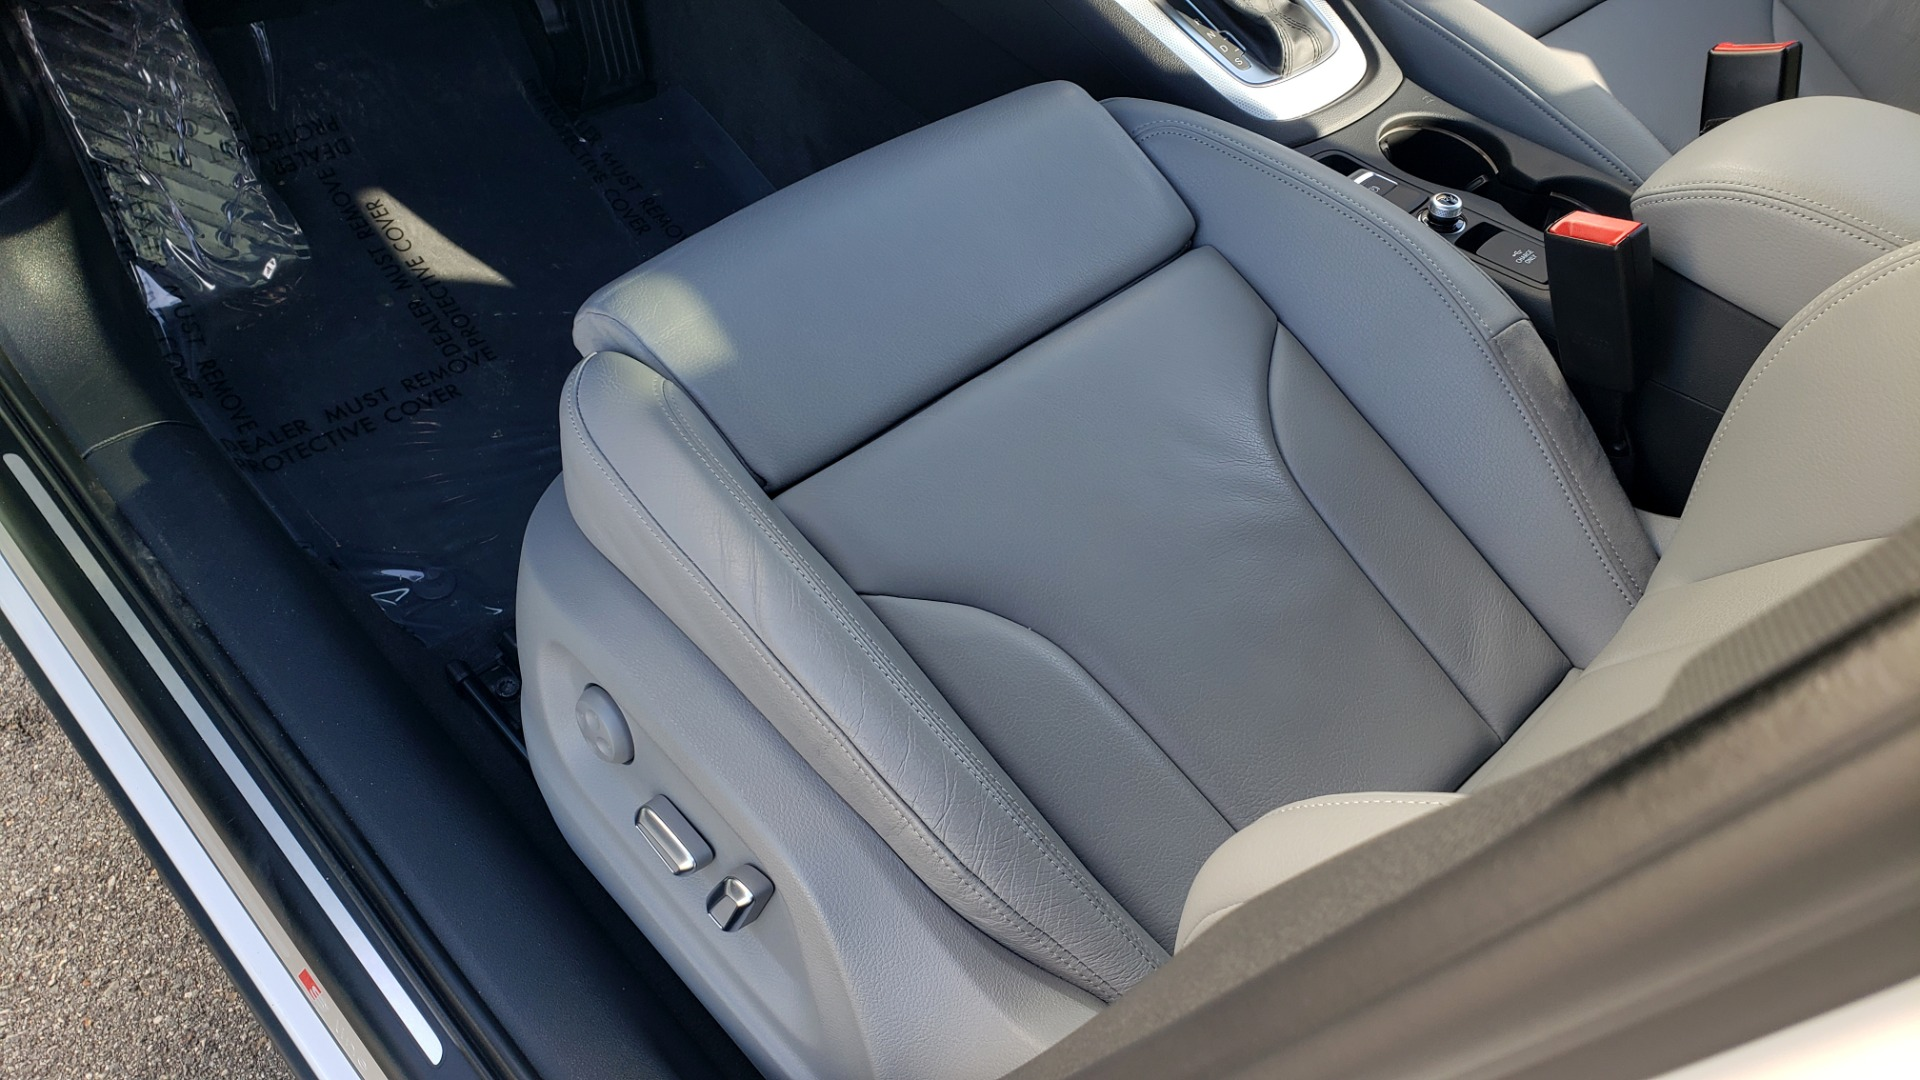 Used 2018 Audi Q3 PREMIUM PLUS 2.0T / SPORT PKG / NAV / BOSE / SUNROOF / REARVIEW for sale Sold at Formula Imports in Charlotte NC 28227 30